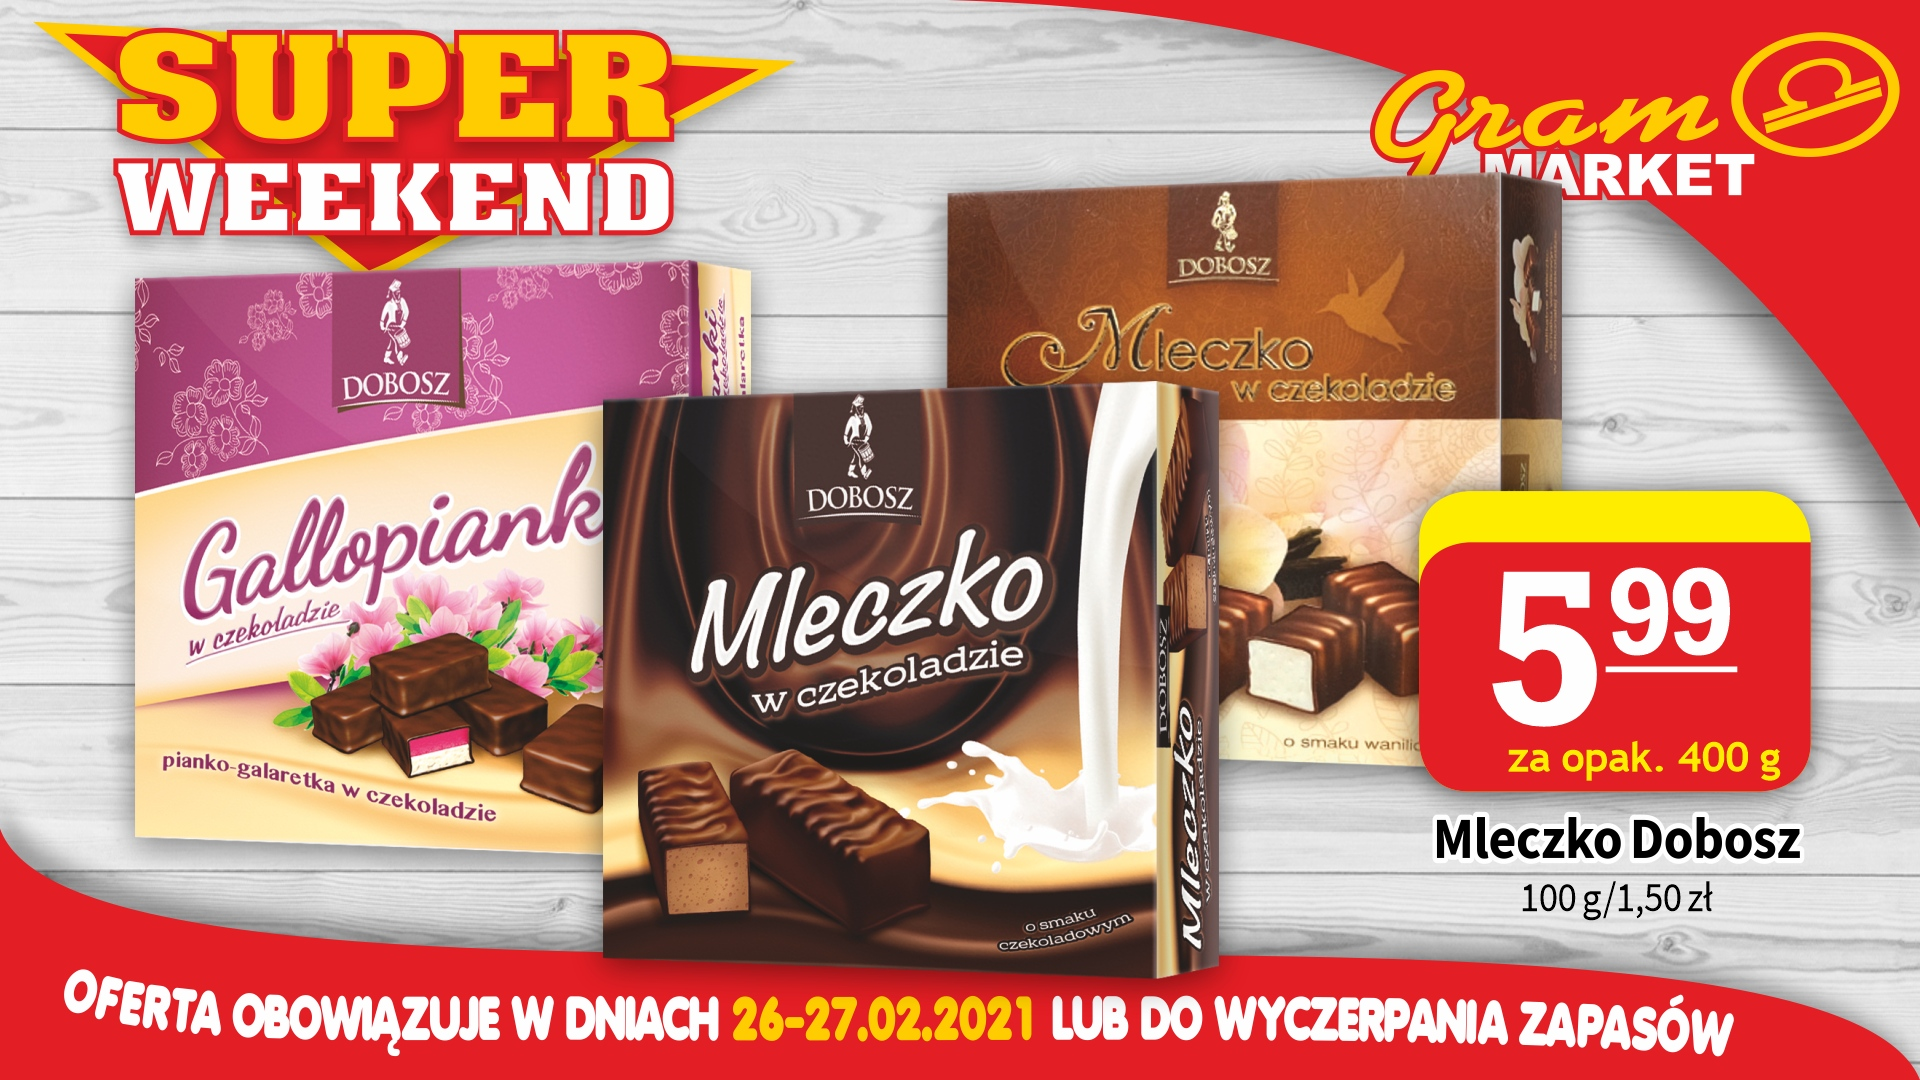 SUPER_WEEKEND-26-27-6